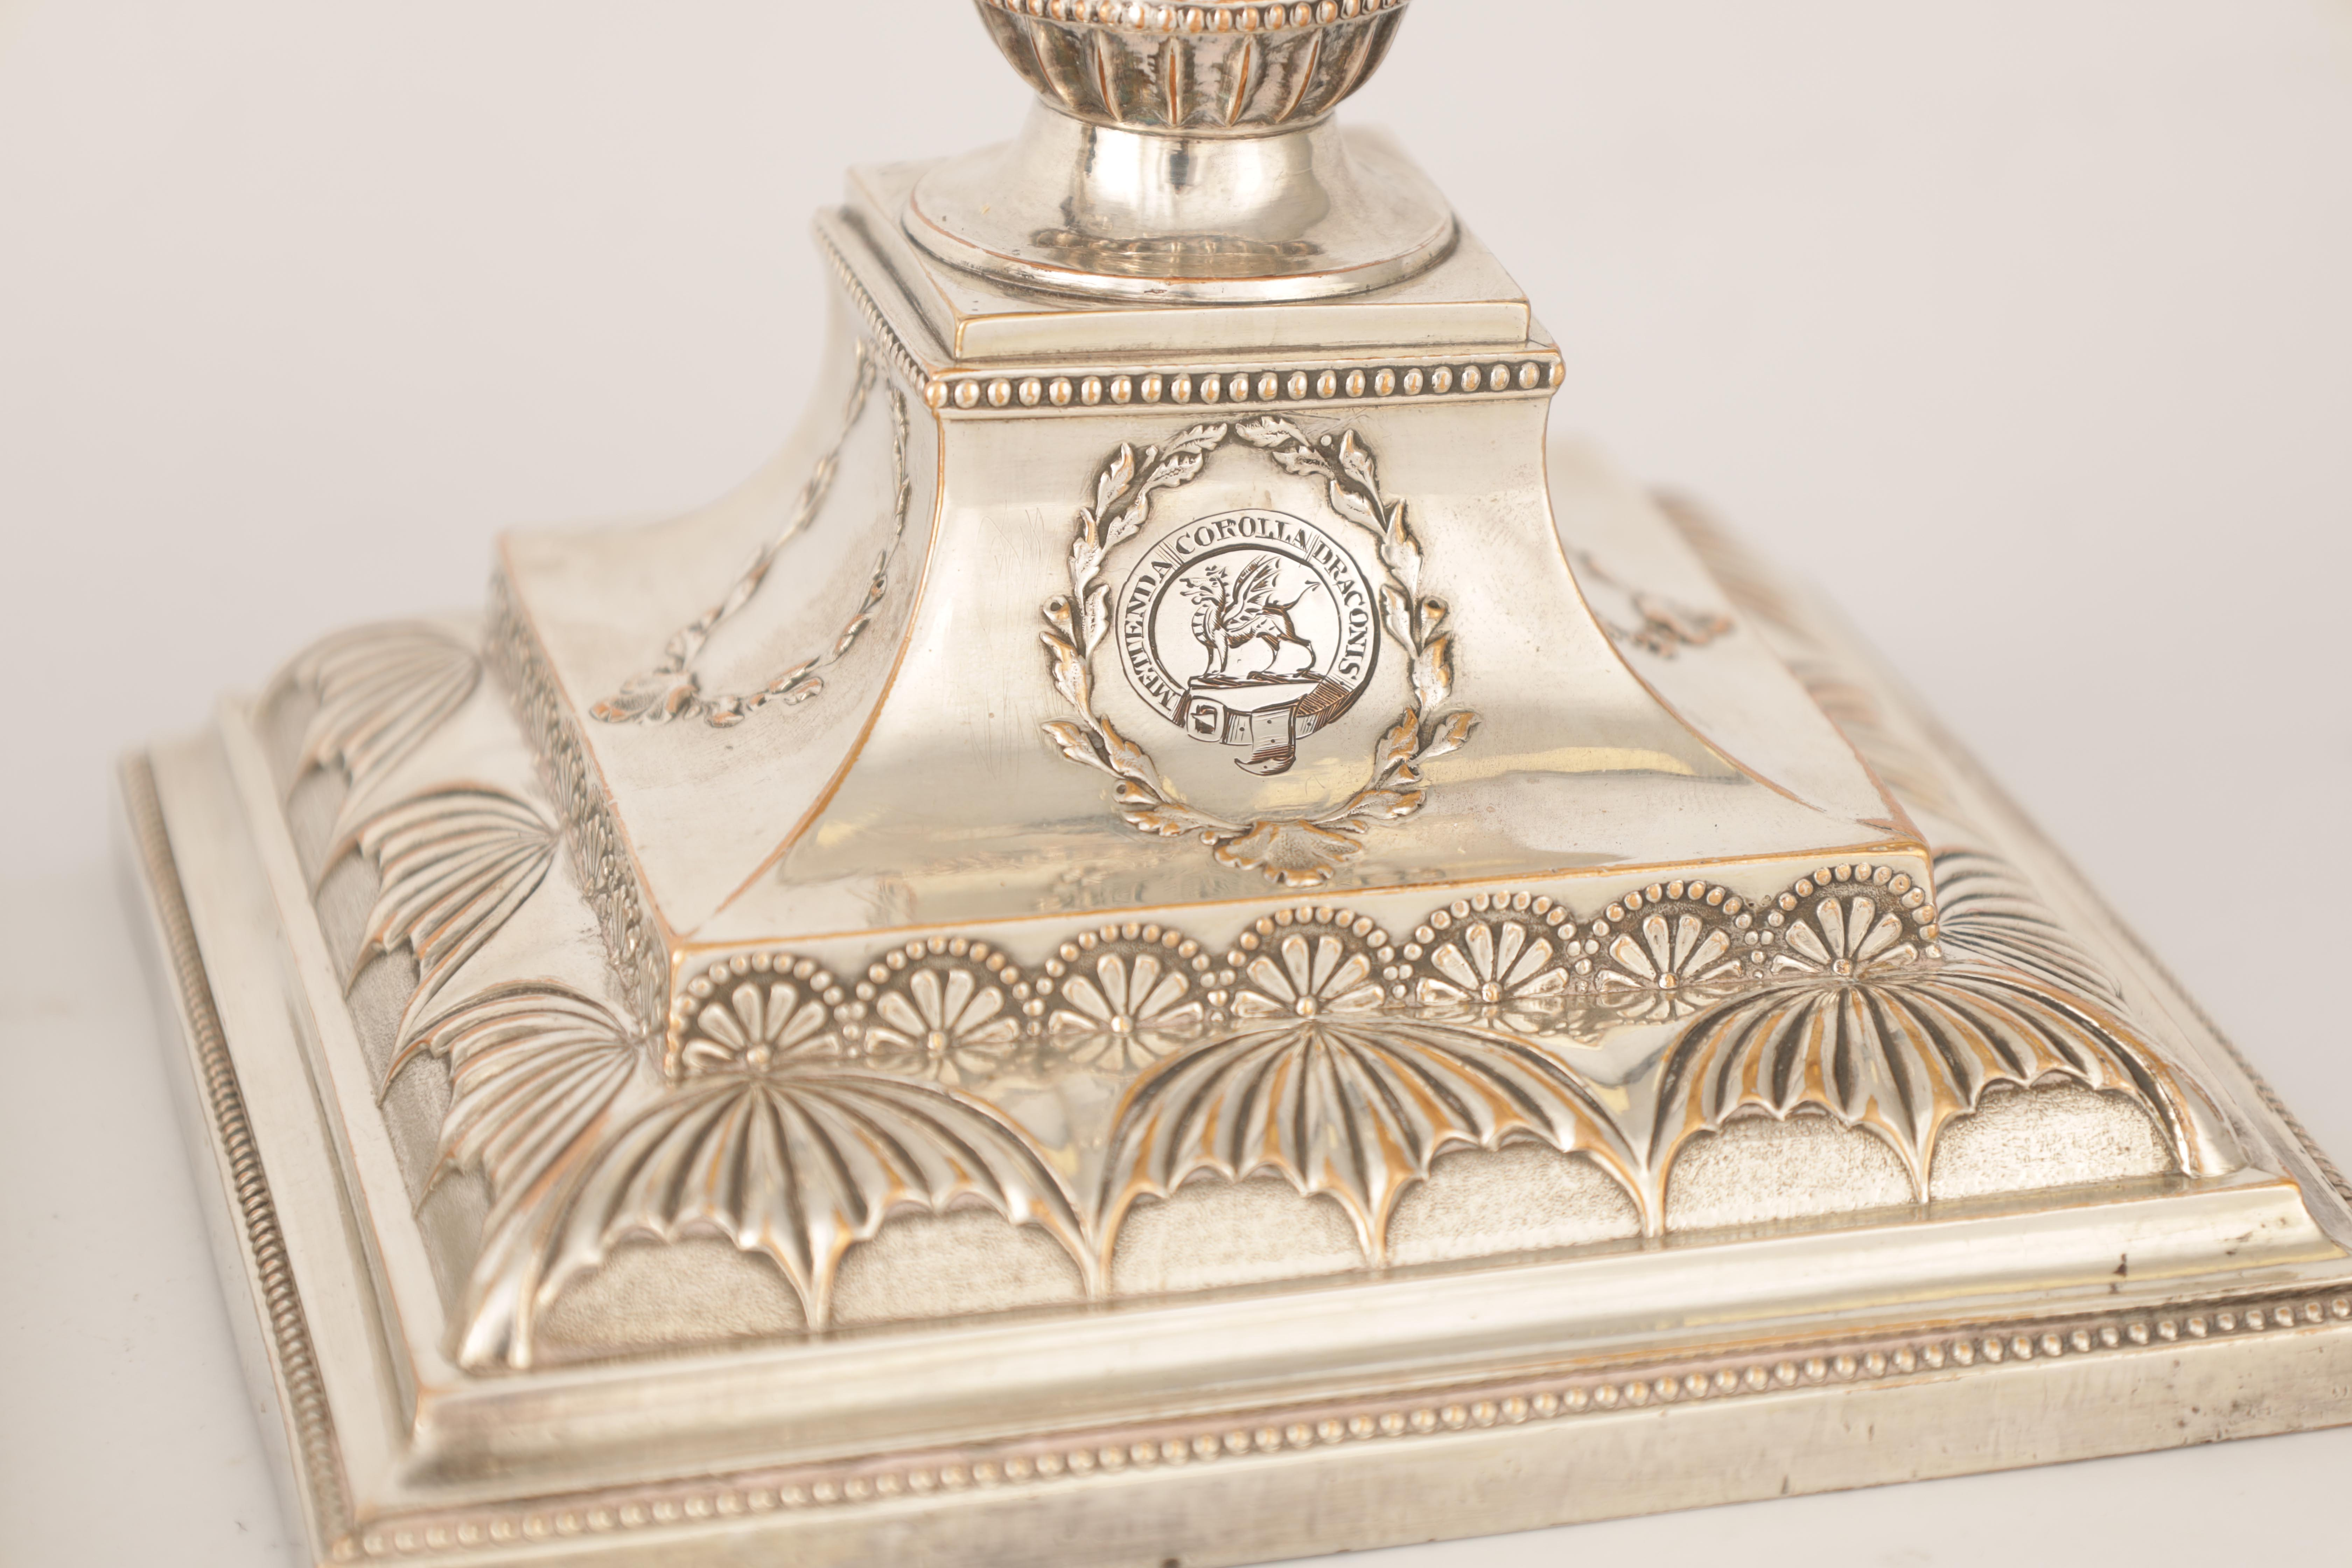 A PAIR OF 19TH CENTURY SHEFFIELD PLATE SILVER ON COPPER ADAM STYLE CANDLESTICKS bearing the crest - Image 4 of 5